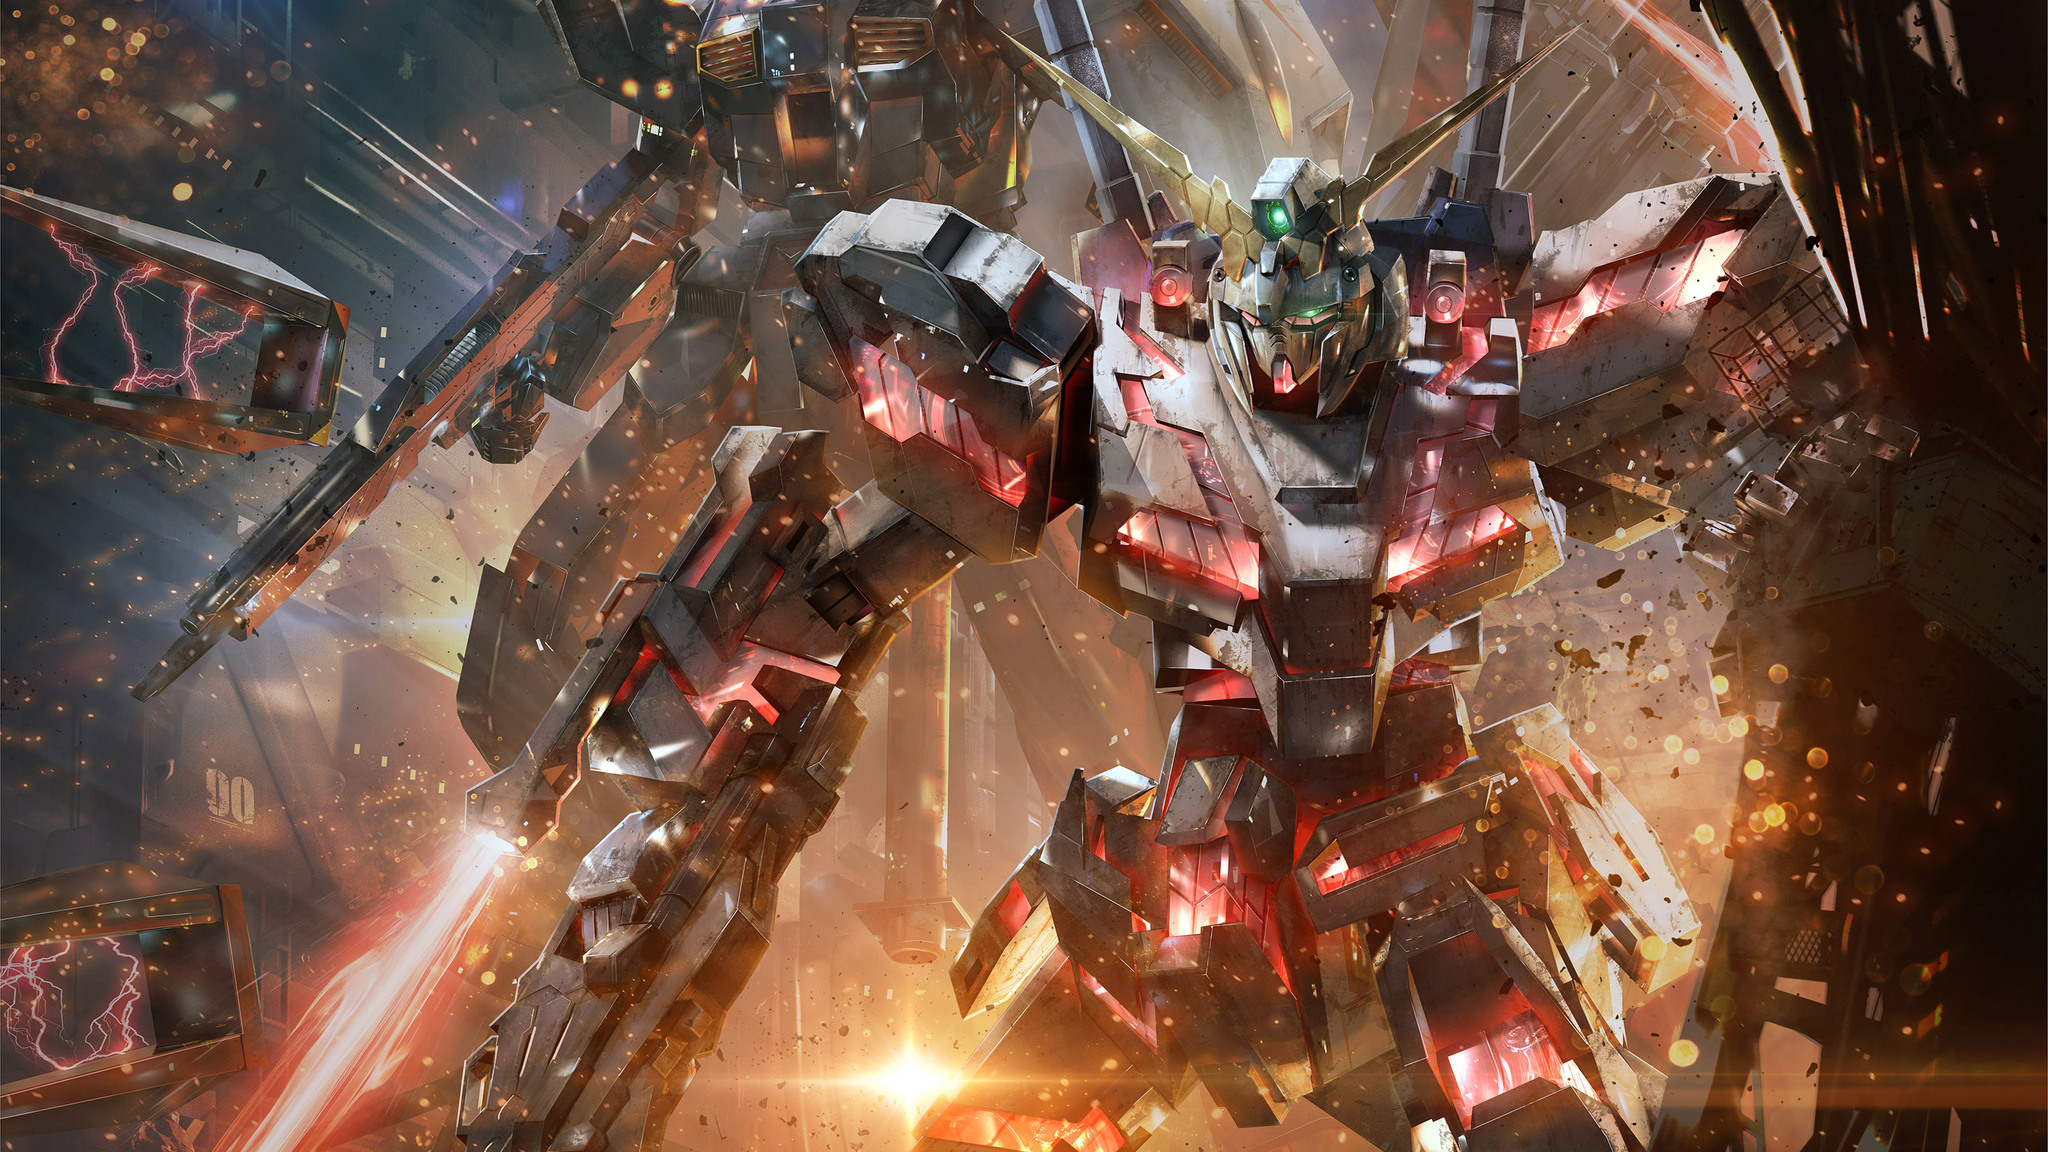 2048x1152 Gundam Versus 2048x1152 Resolution HD 4k Wallpapers, Images, Backgrounds, Photos and Pictures